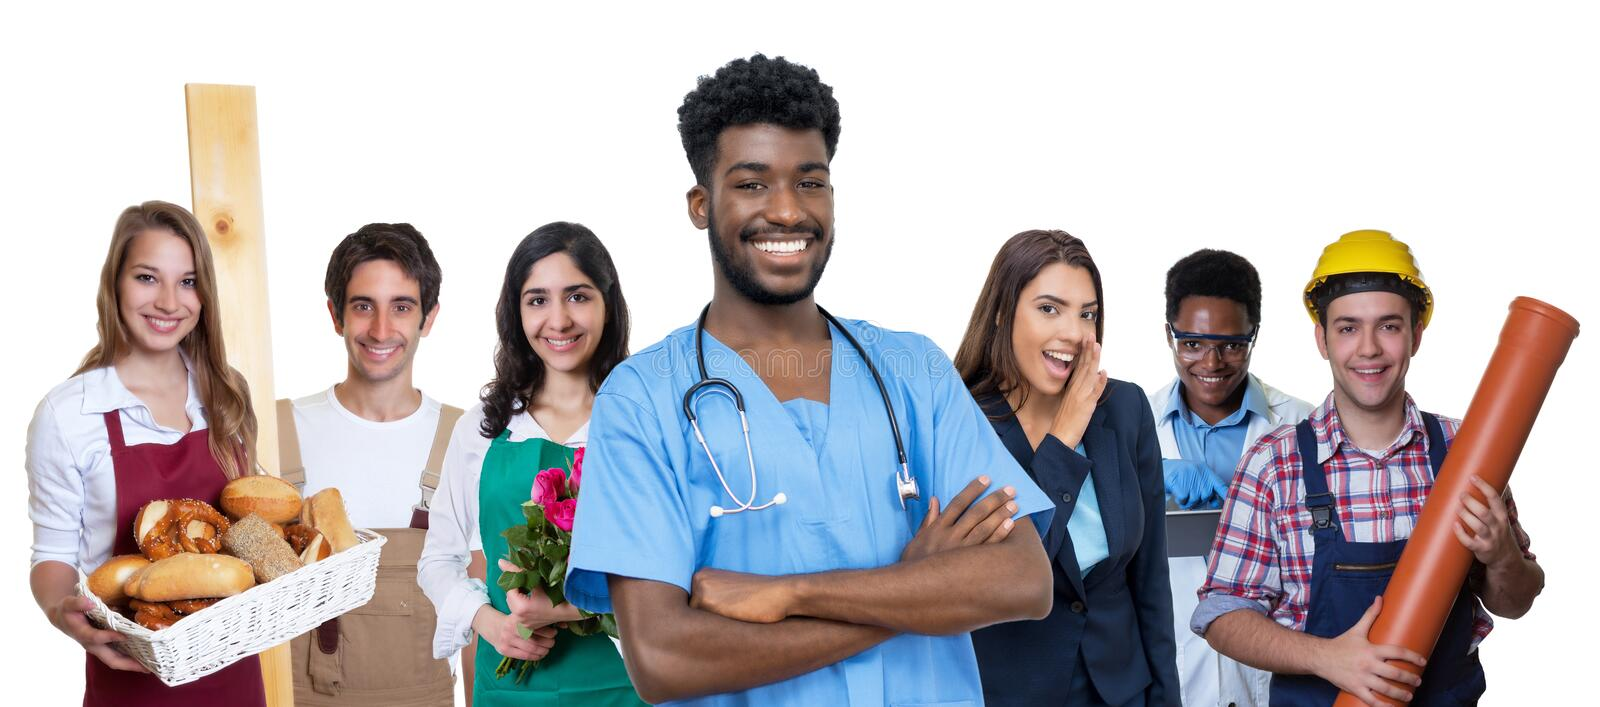 Laughing african american male nurse with group of international apprentices royalty free stock photography